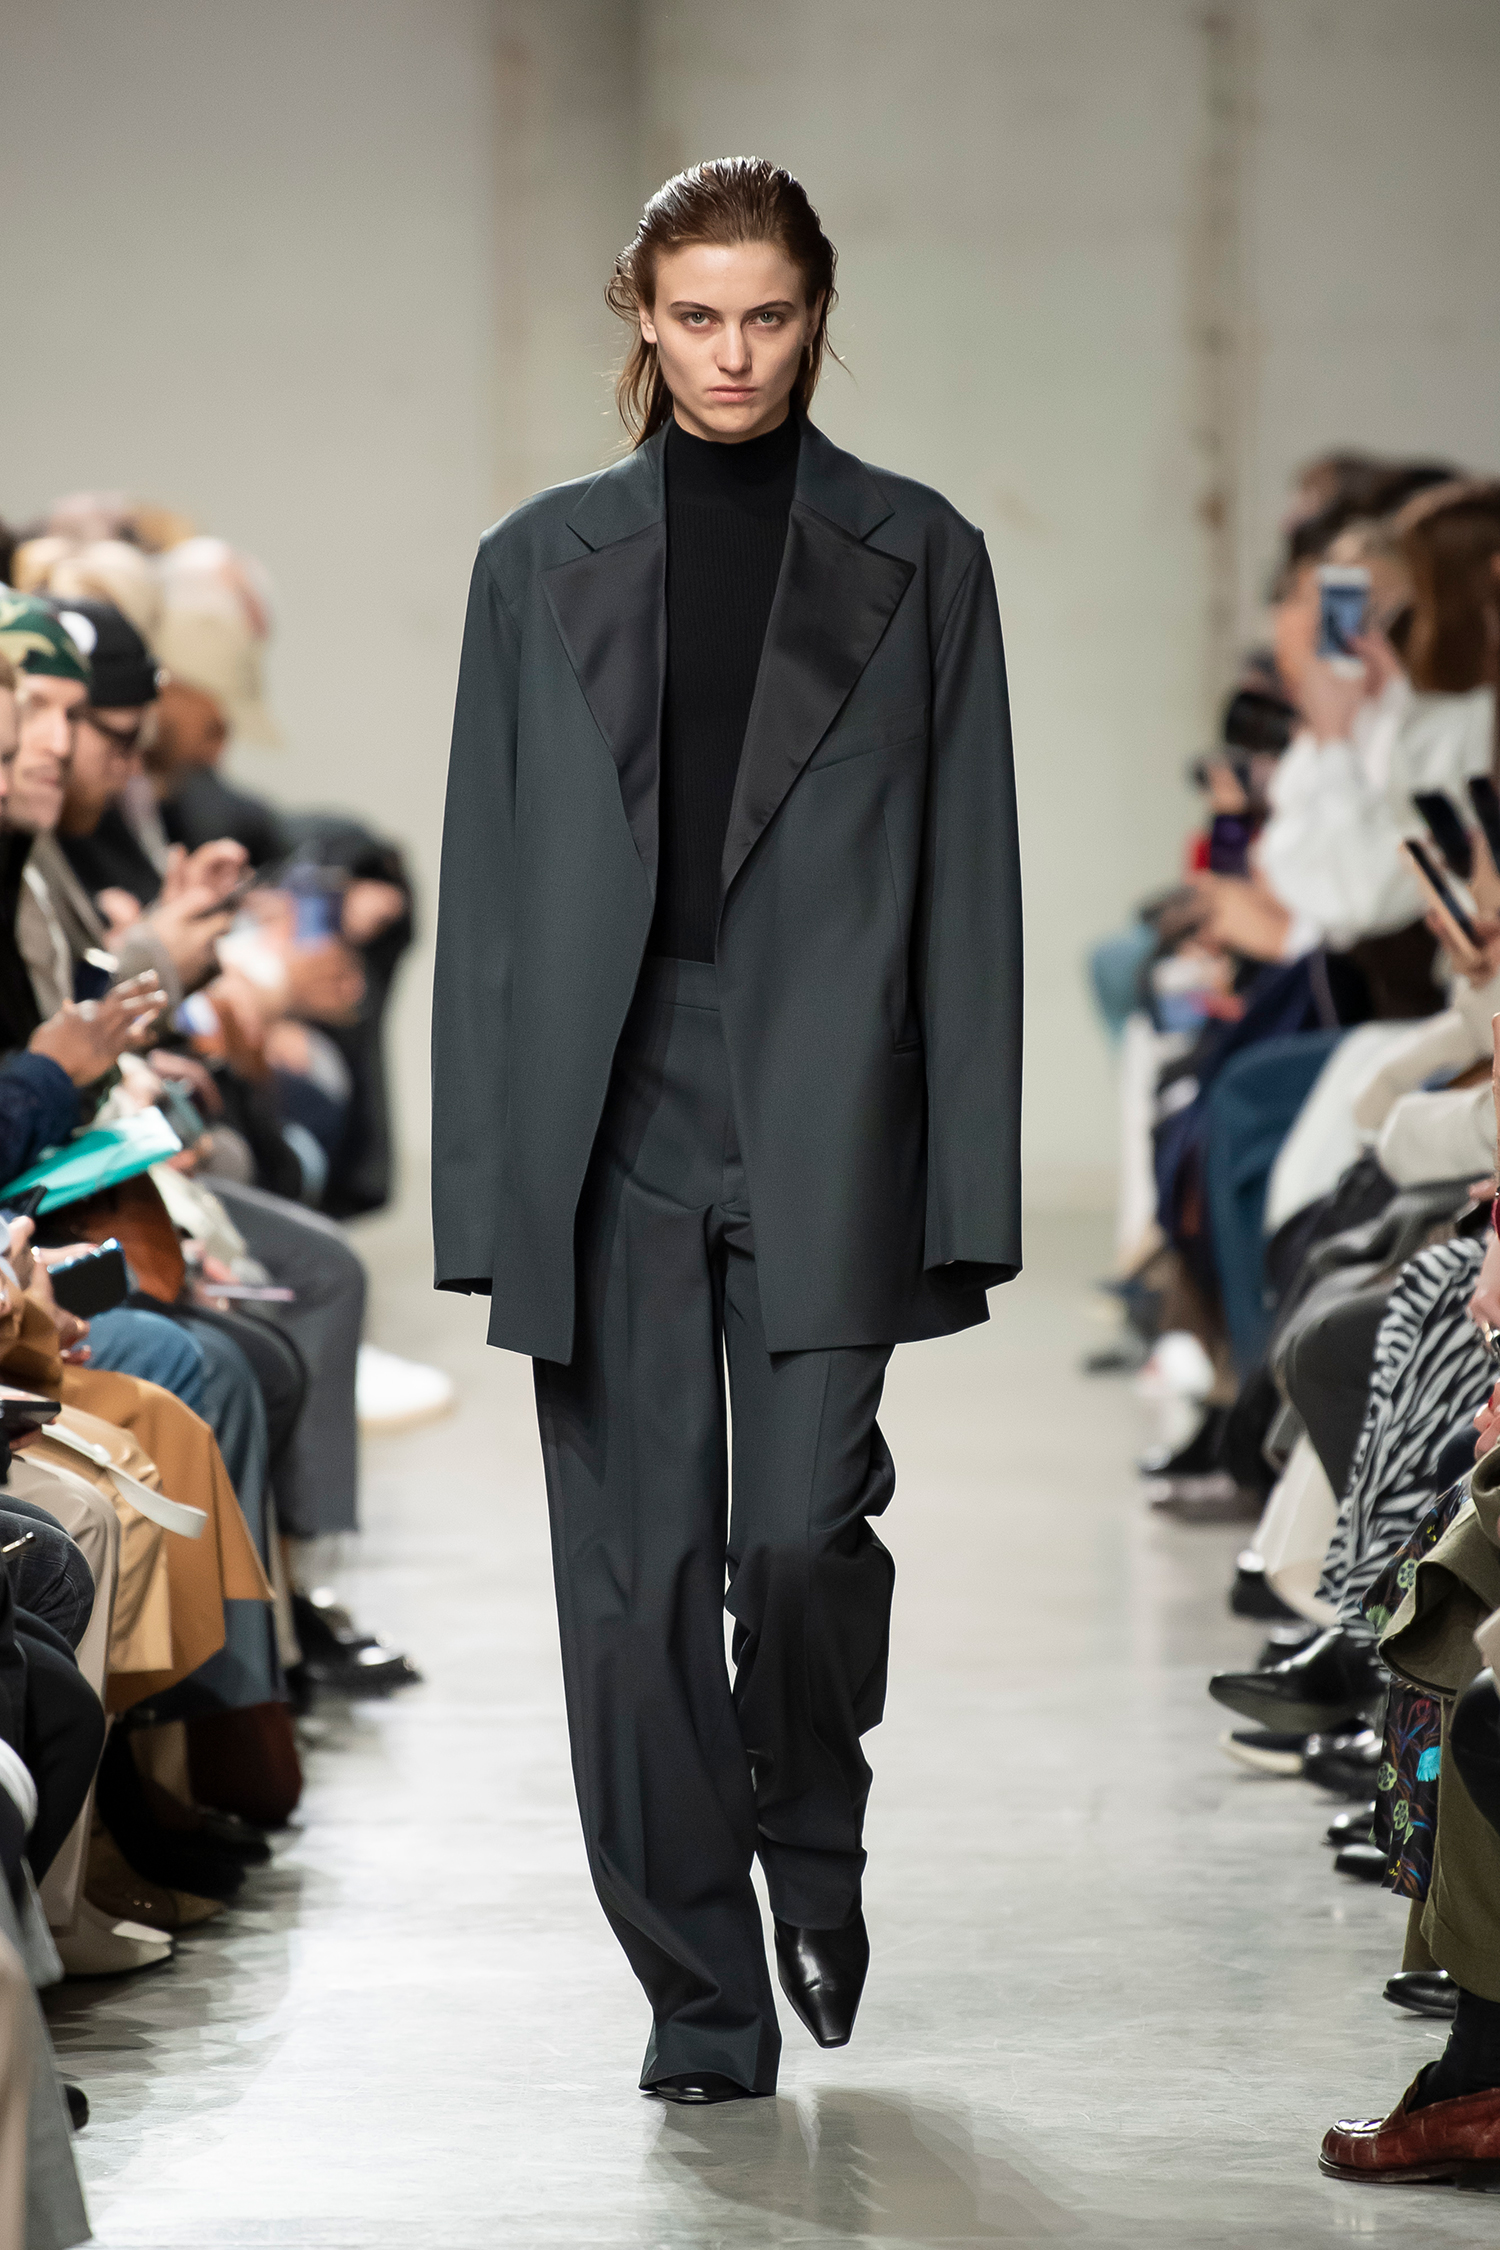 LOOK 5 Jacket RAFE Knitwear RONNIE Trousers RUTH